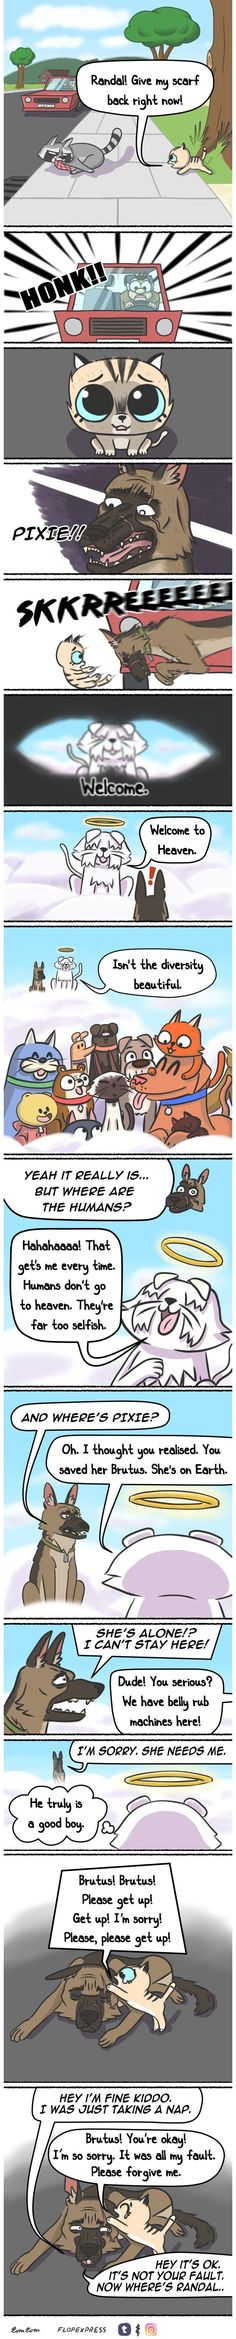 Comics-Abenteuer-Hunde-Pixie-Brutus-Fan-Art, You are in the right place about Cute Dogs cartoon Here Comics Und Cartoons, Funny Cartoons, Funny Comics, Cat Comics, Fan Art, Art Mignon, Comics Story, Cute Stories, Cute Funny Animals